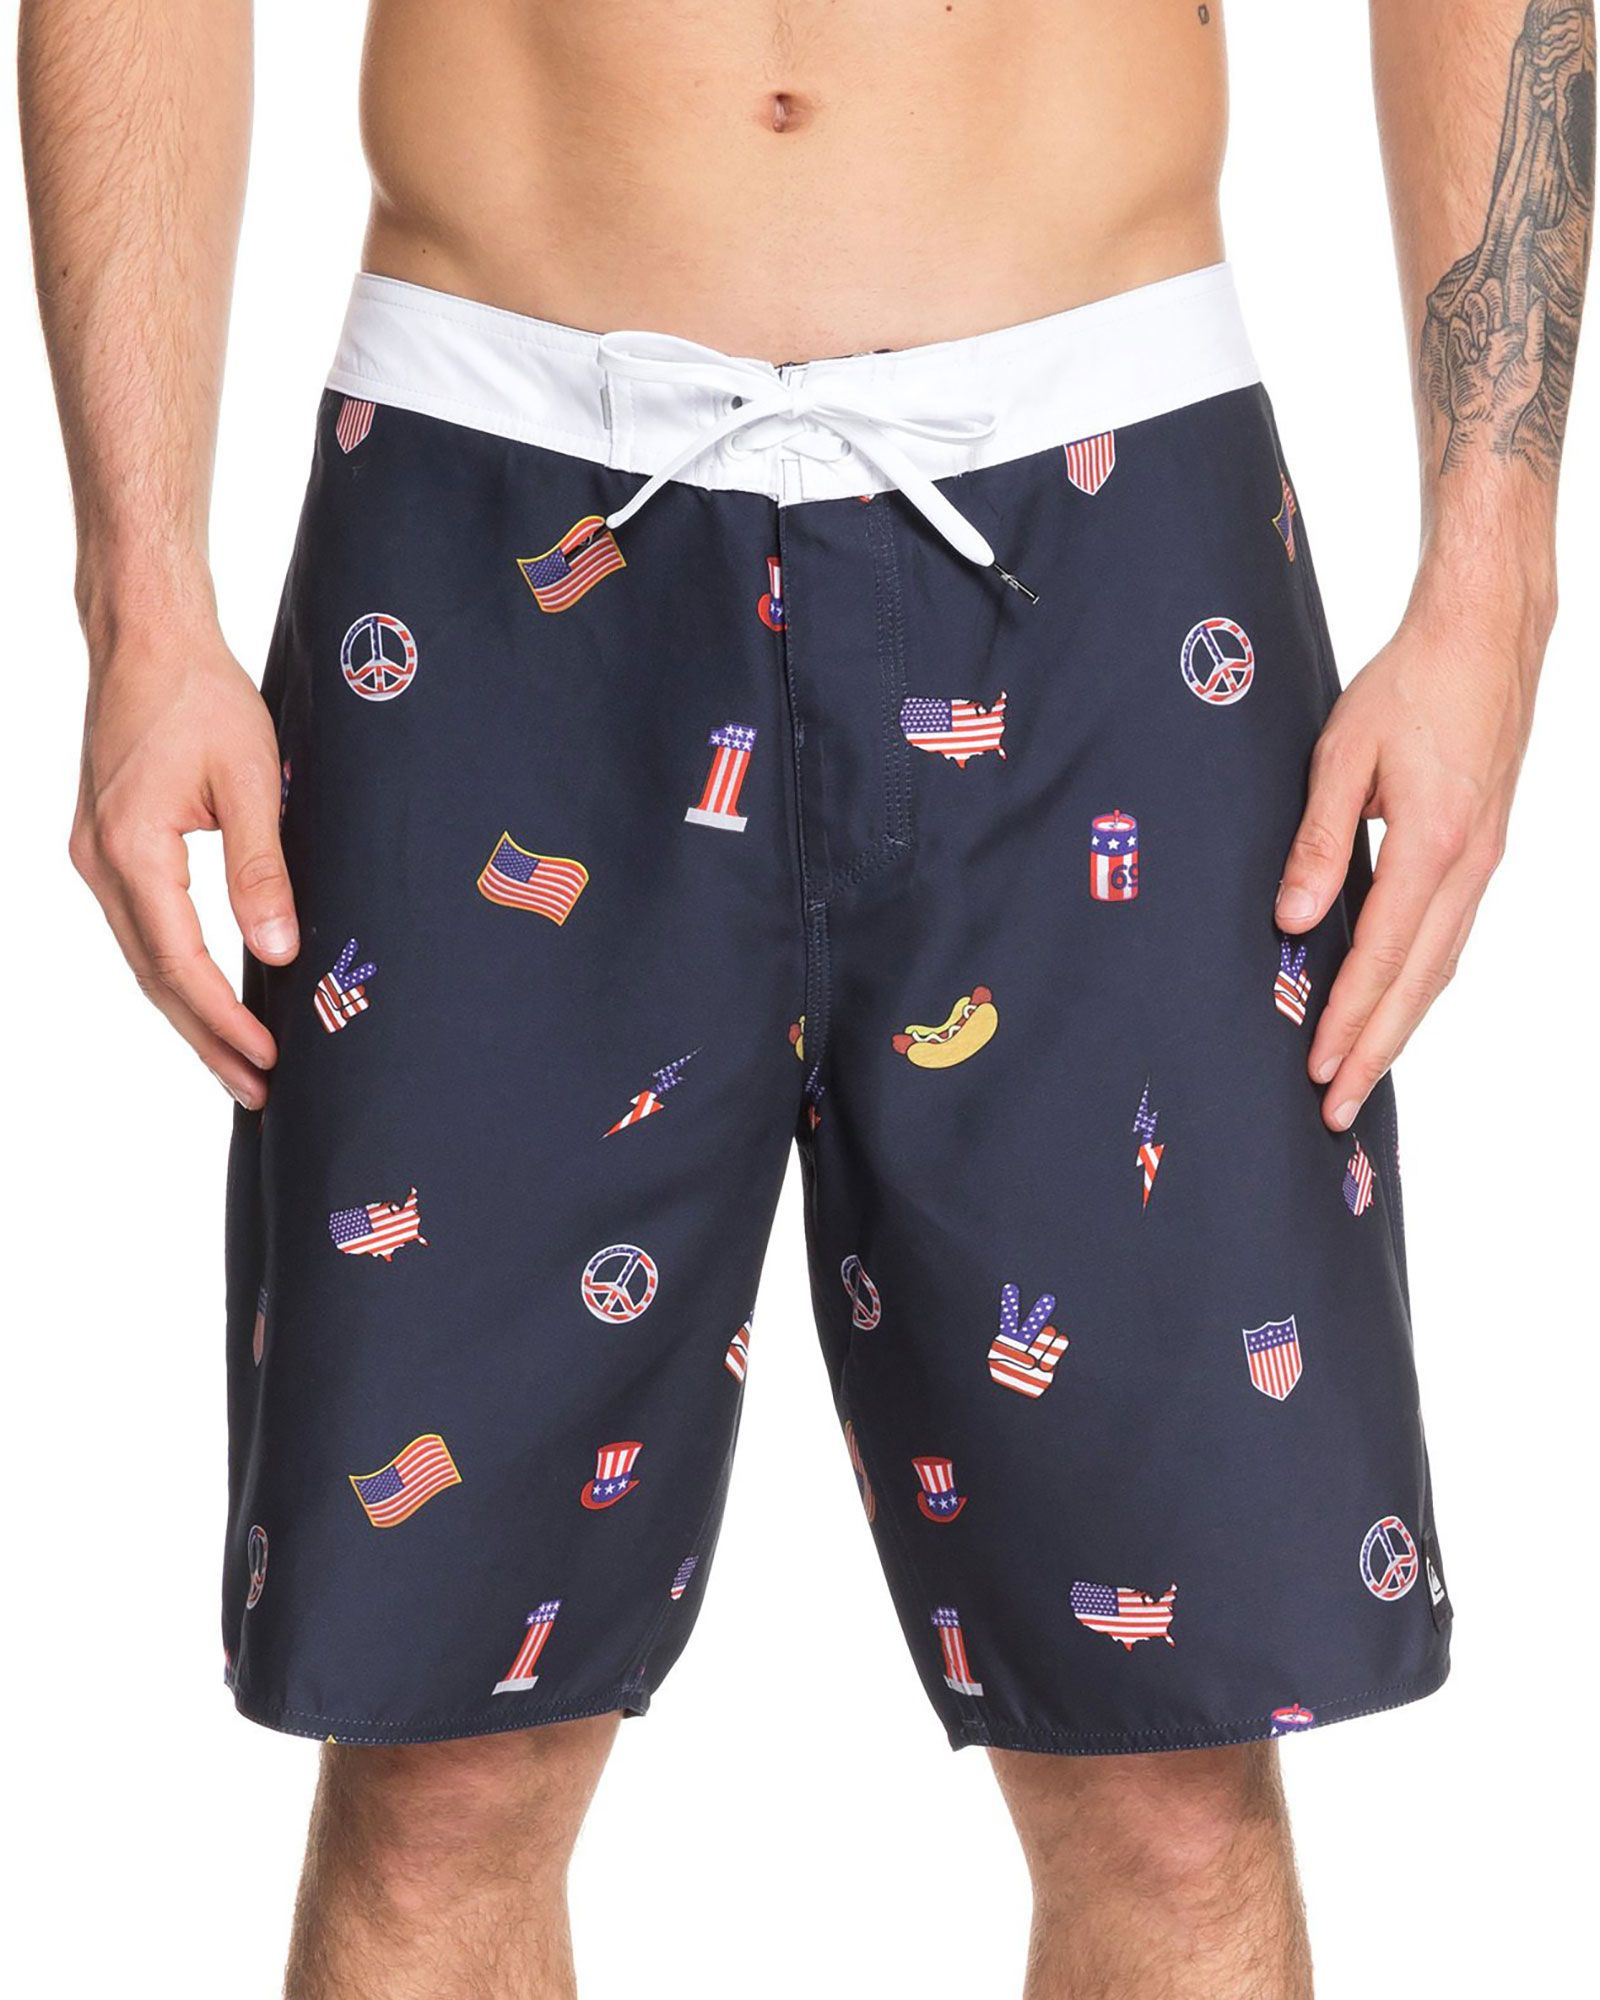 ccaf8e50ad Quiksilver Men's Everyday Hot Dog Board Shorts